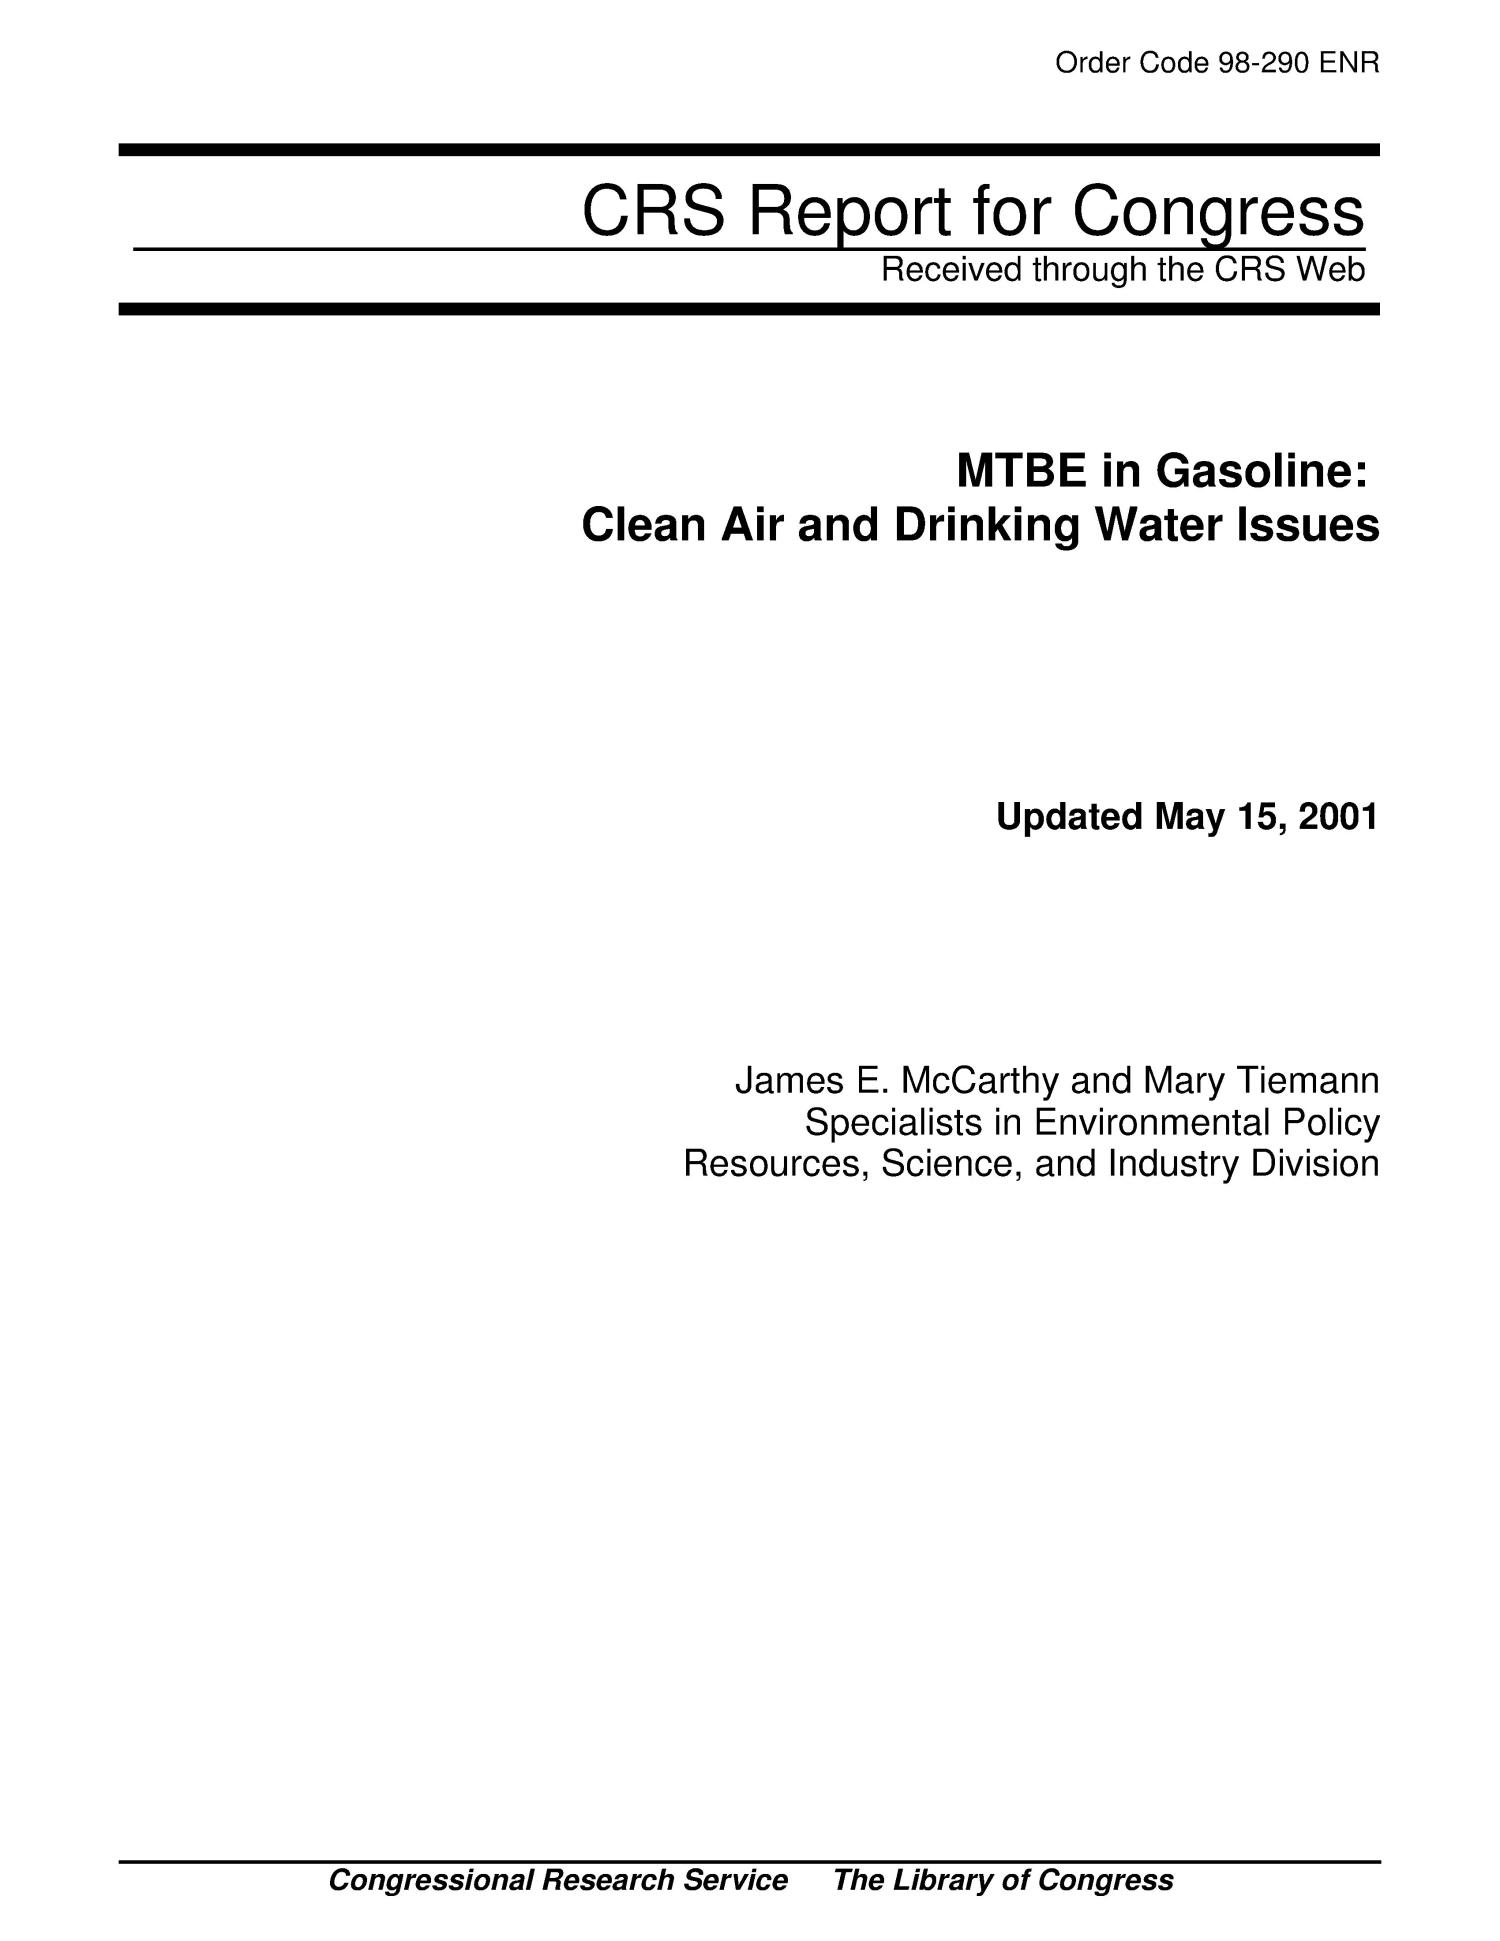 MTBE in Gasoline: Clean Air and Drinking Water Issues                                                                                                      [Sequence #]: 1 of 24